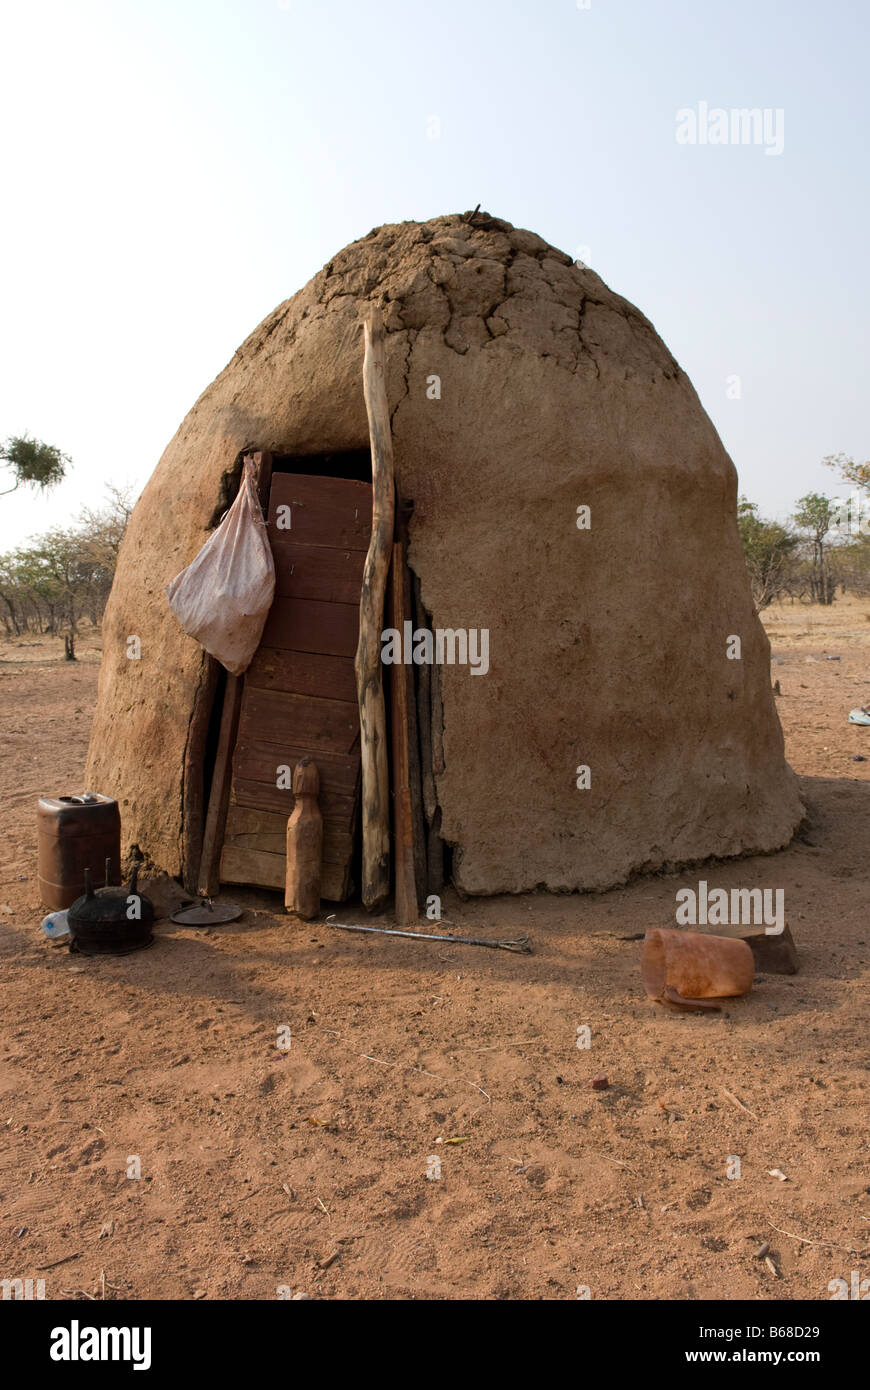 Traditional village huts built from mud and dung at the Himba Oase Village near Kamanjab Namibia Africa - Stock Image